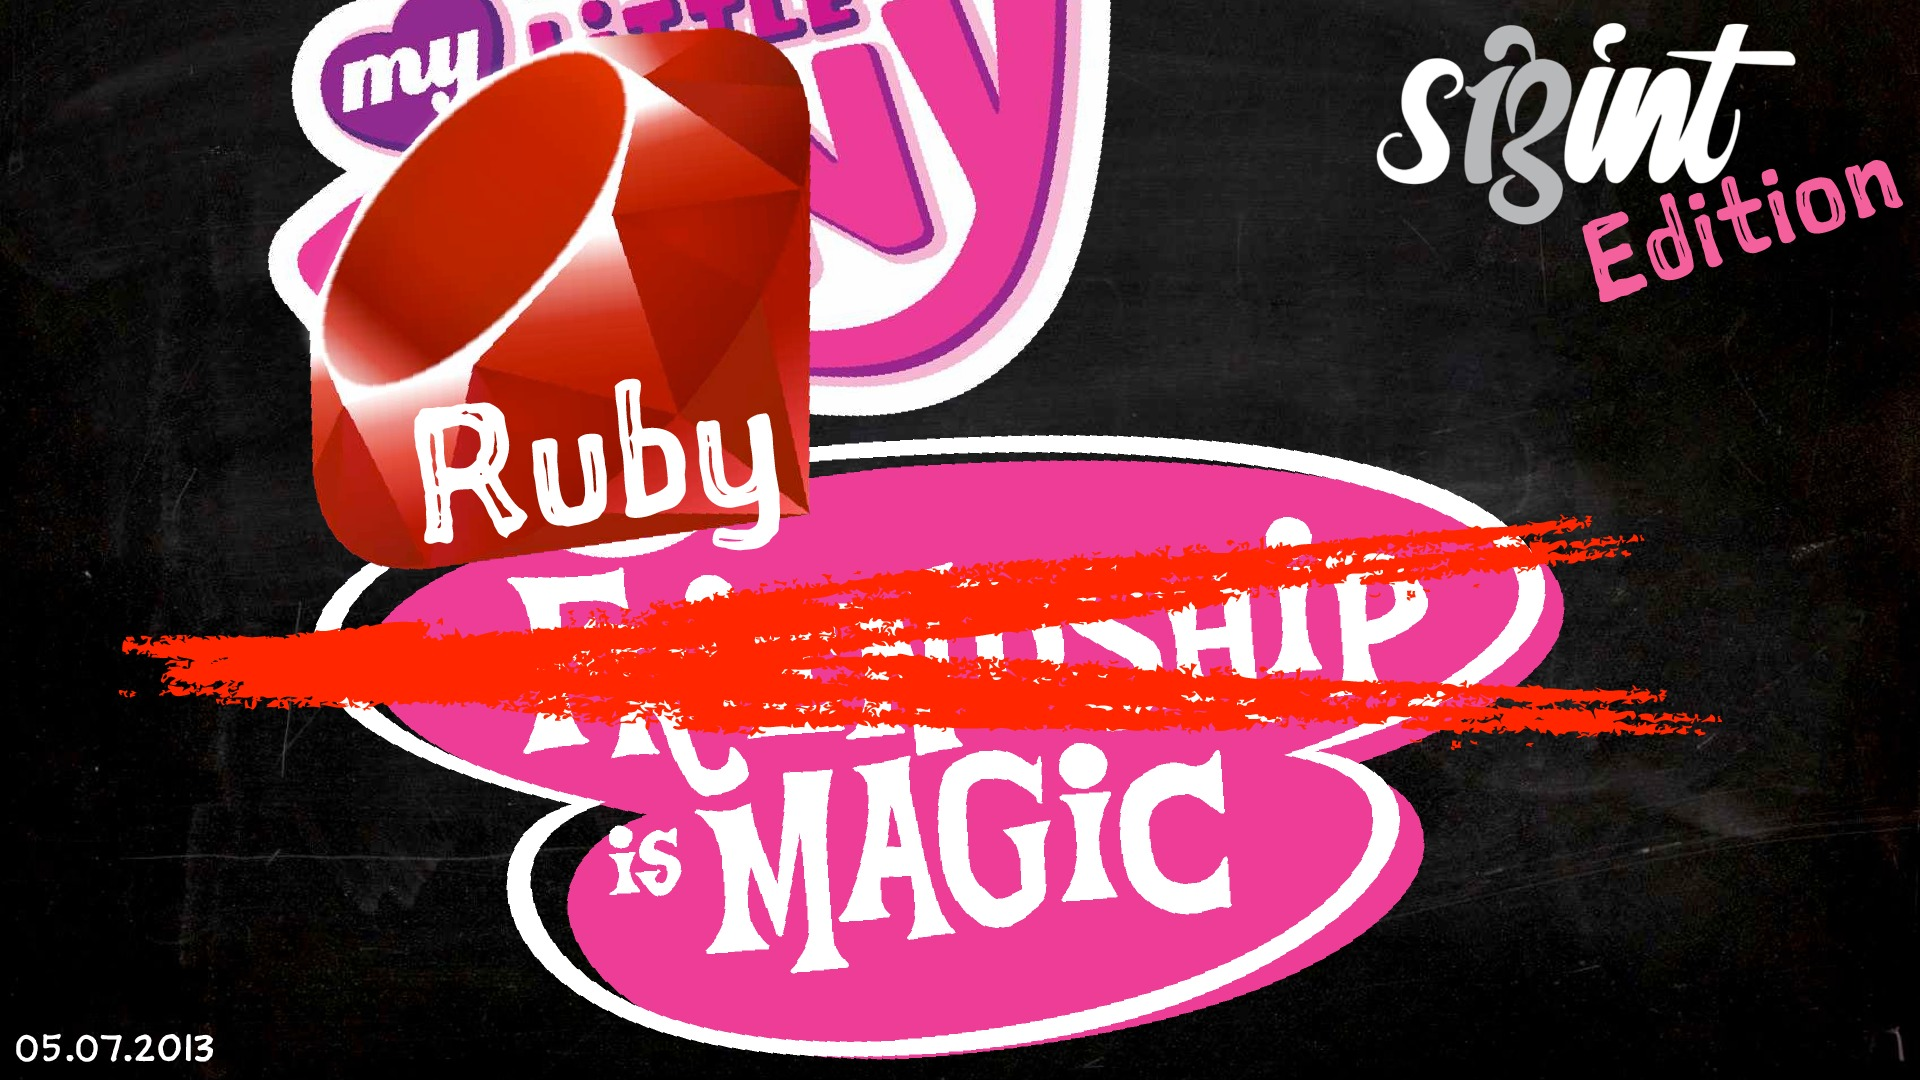 Ruby is Magic - SIGINT Edition